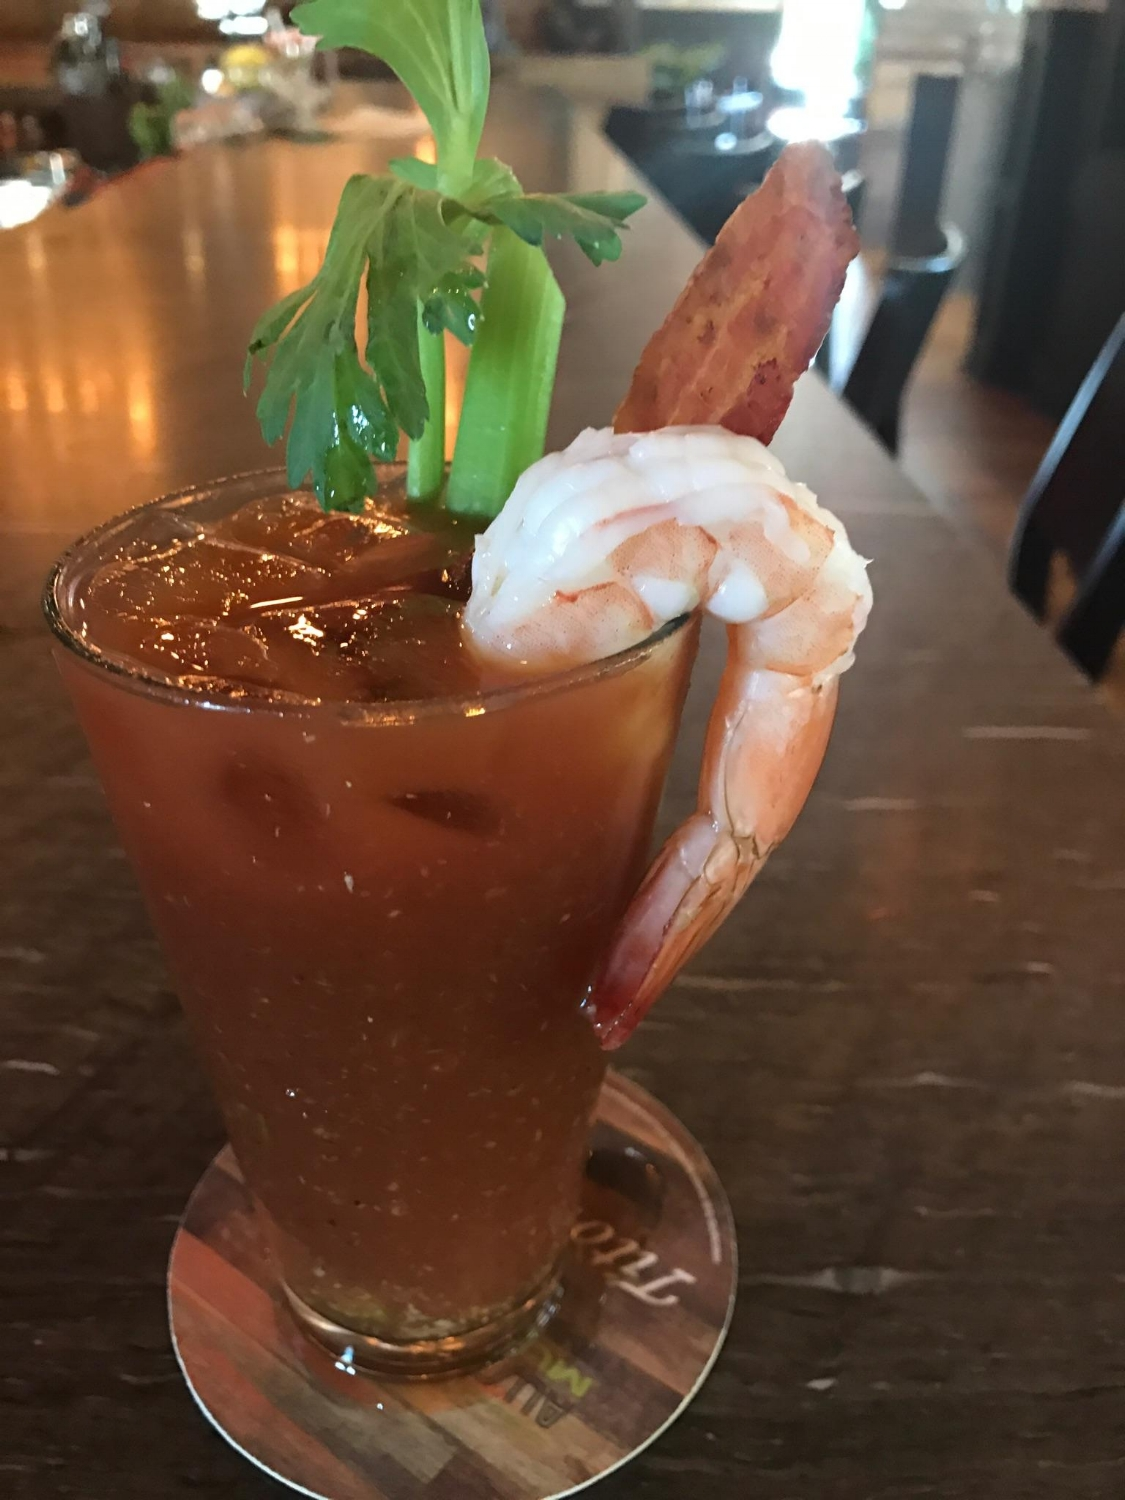 How about some Bloody Mary with your shrimp and bacon?